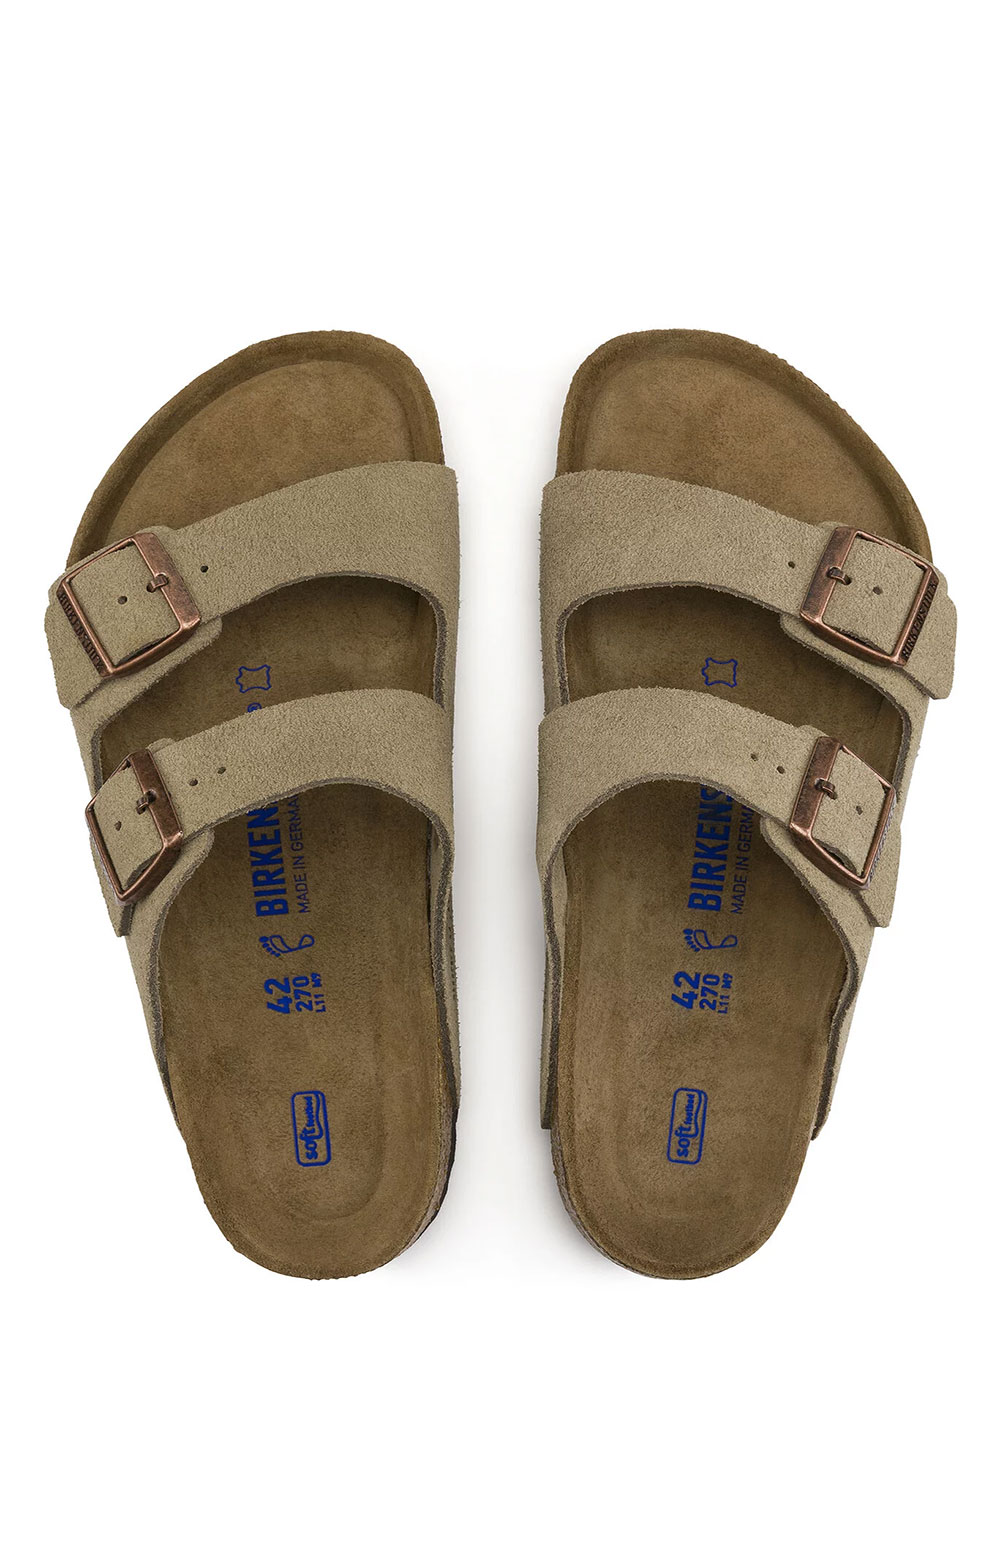 (0951303) Arizona Soft Foodbed Sandals - Taupe 4